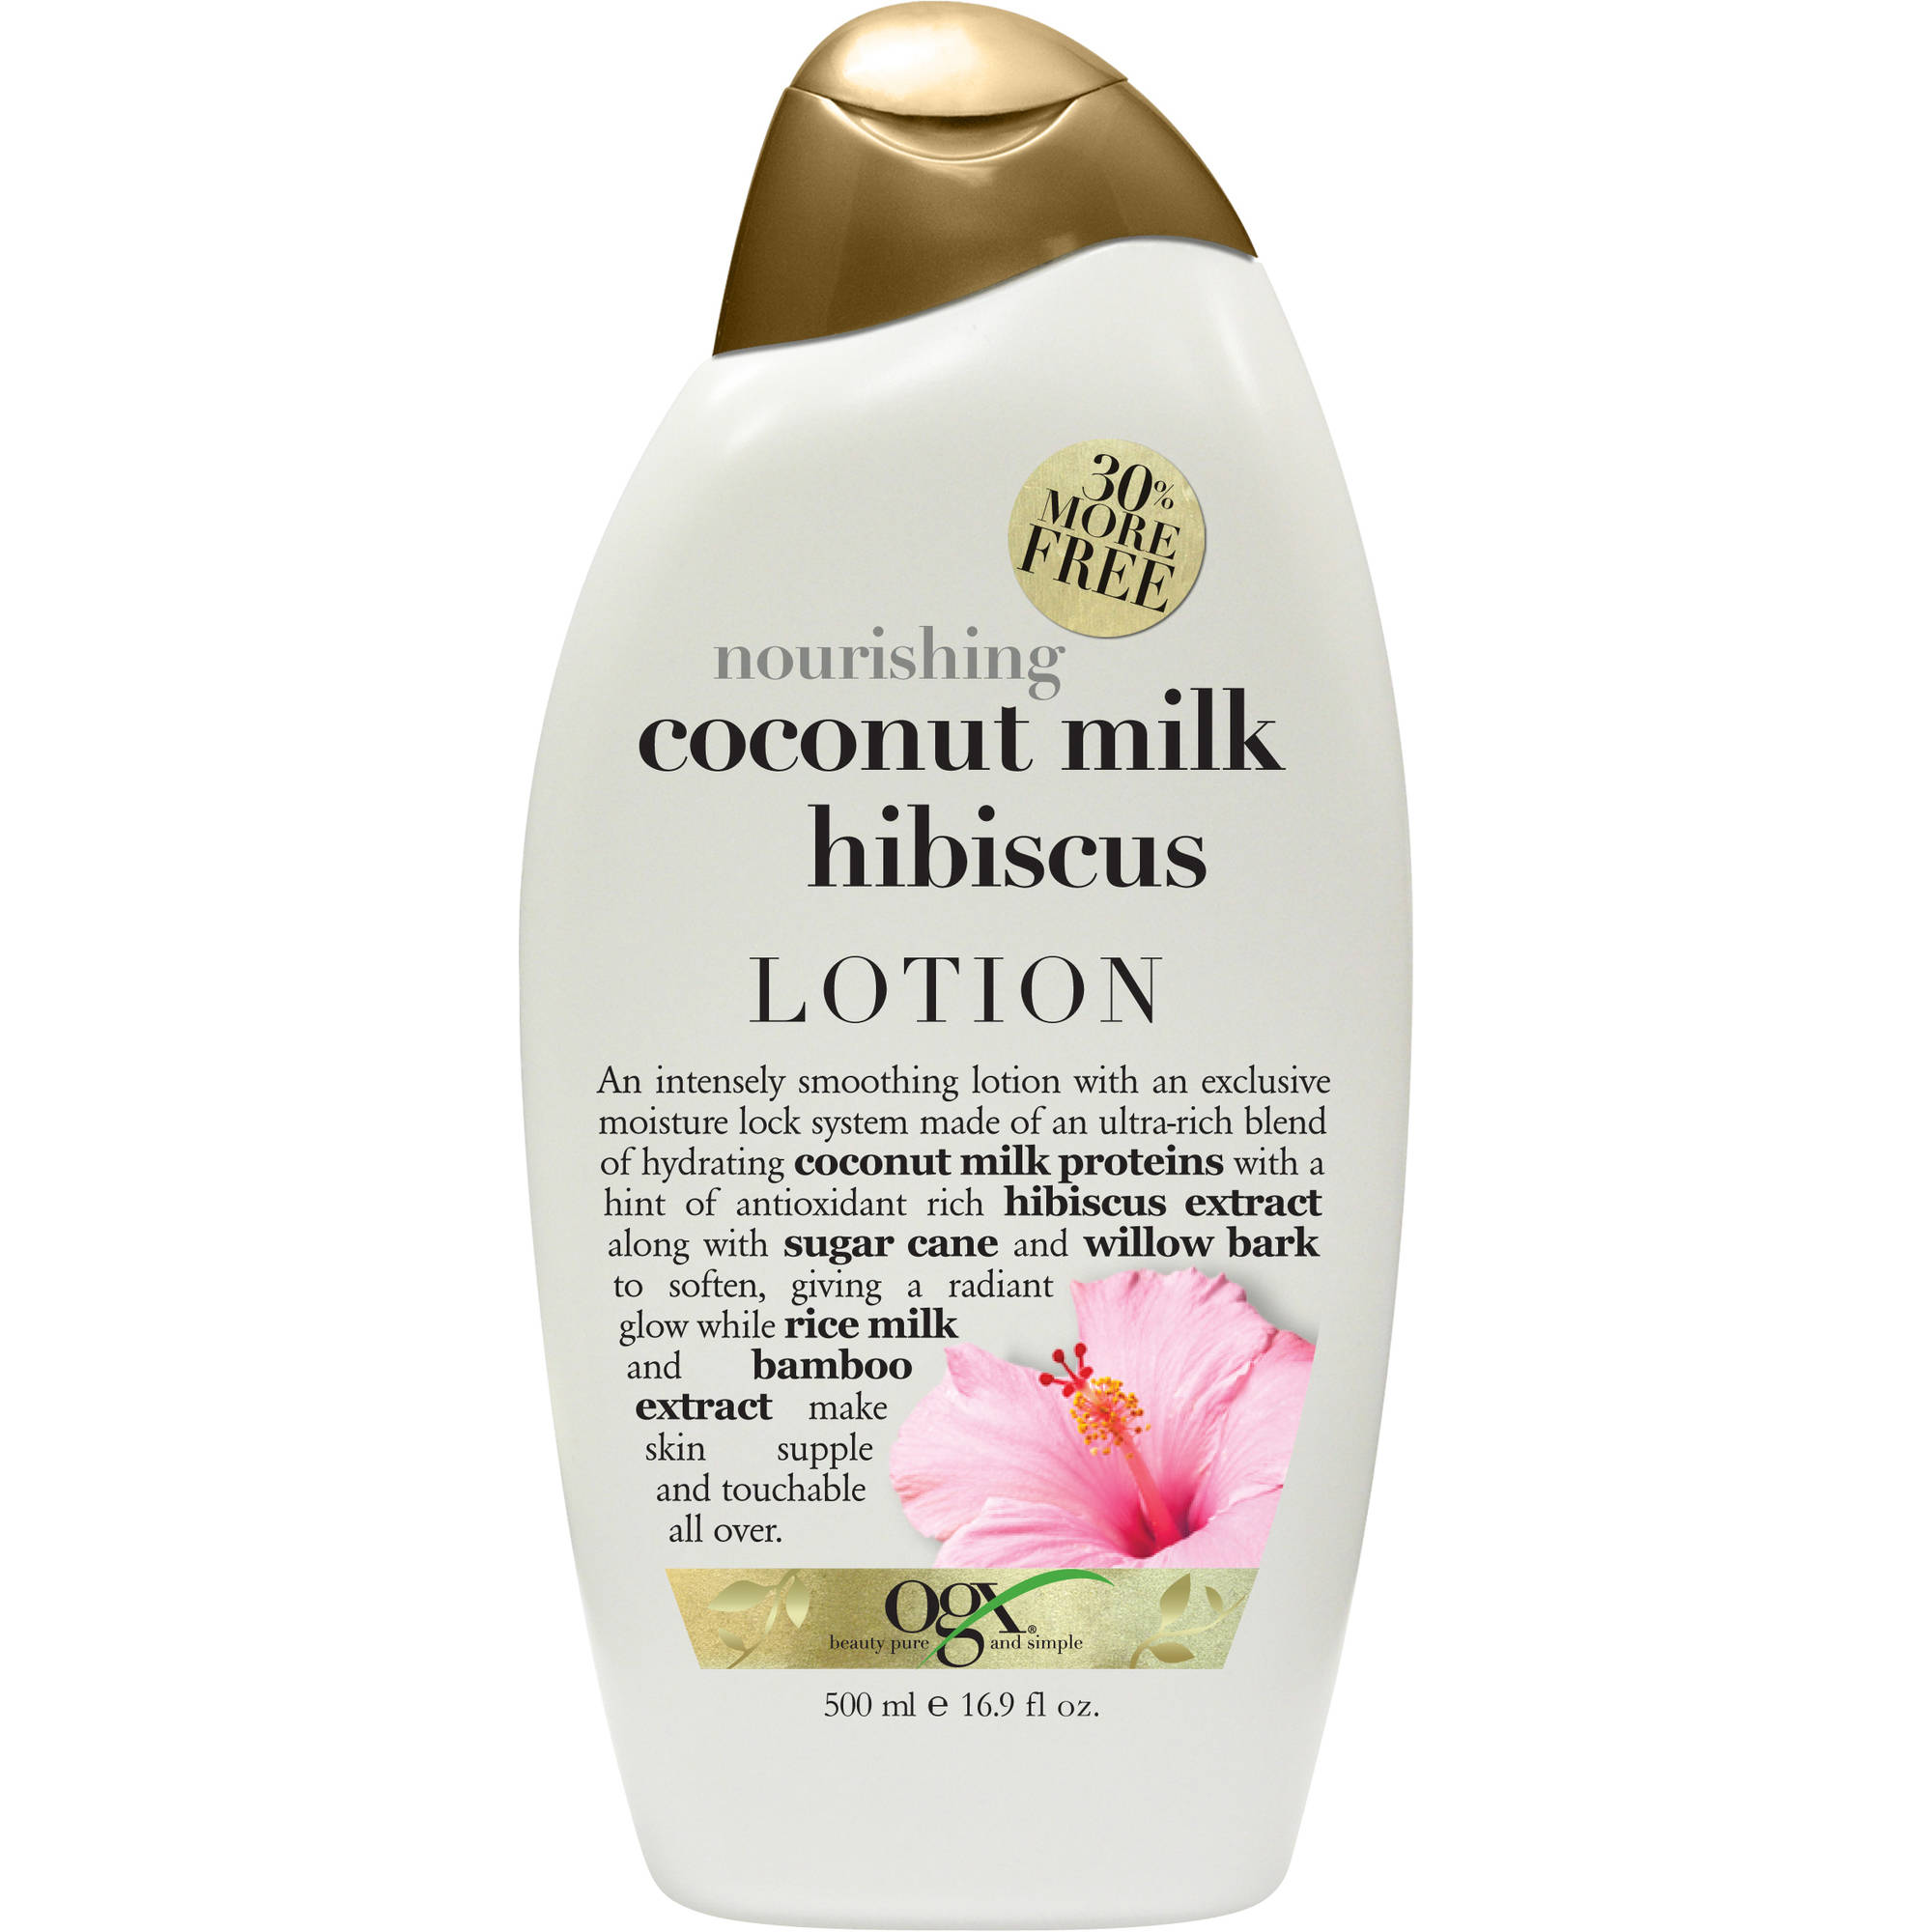 OGX Coconut Milk Hibiscus Lotion, 16.9 fl oz